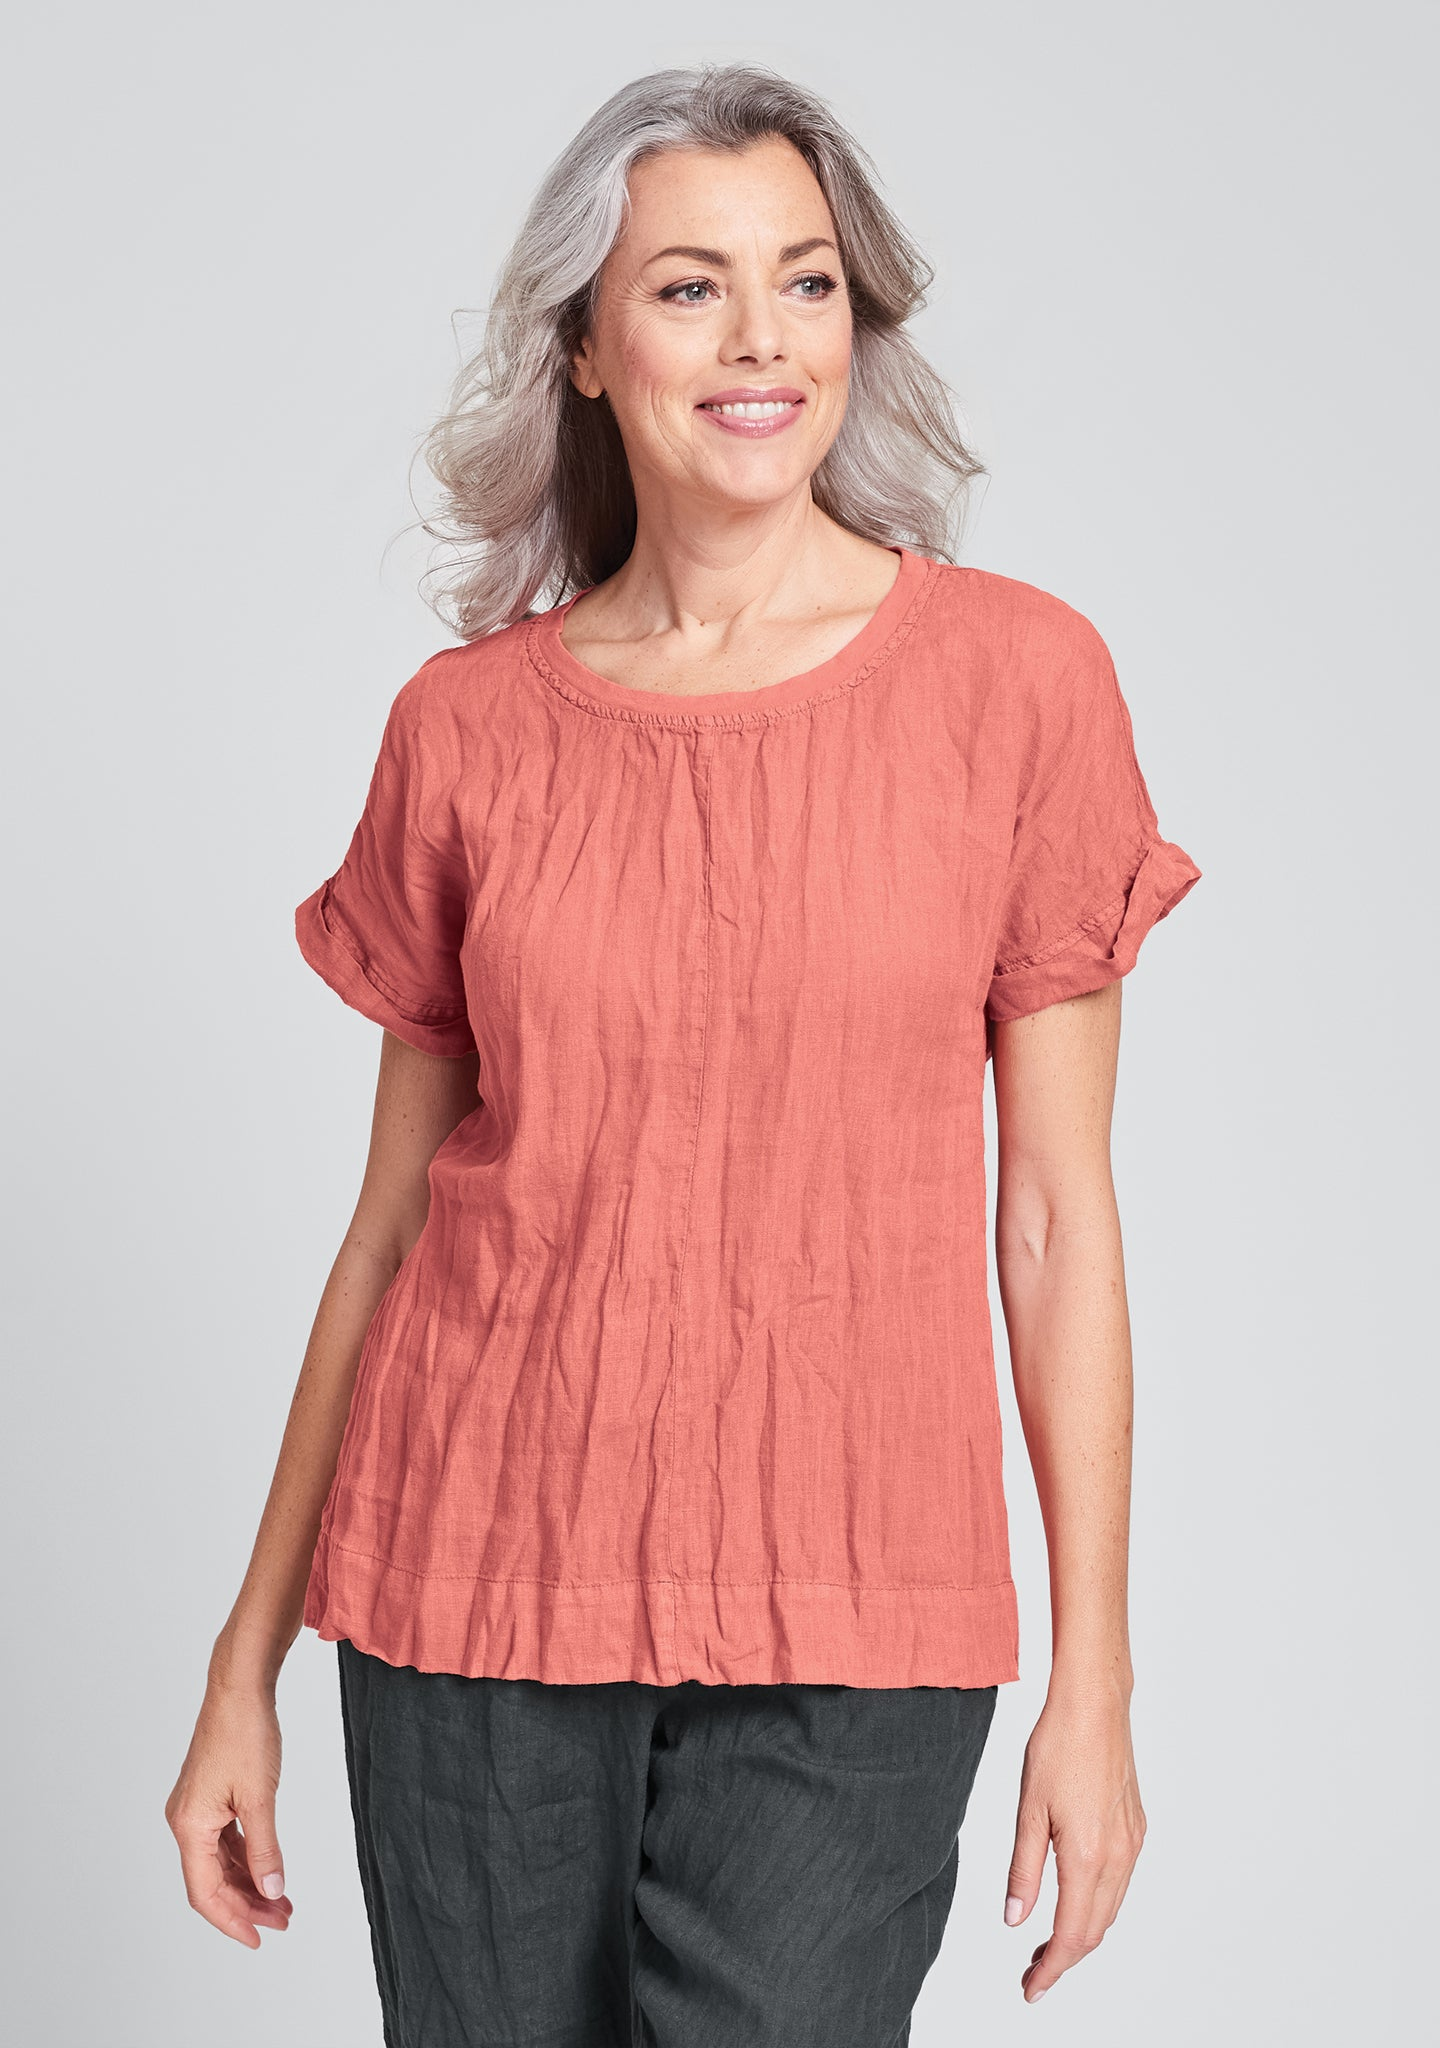 tee top linen t shirt red